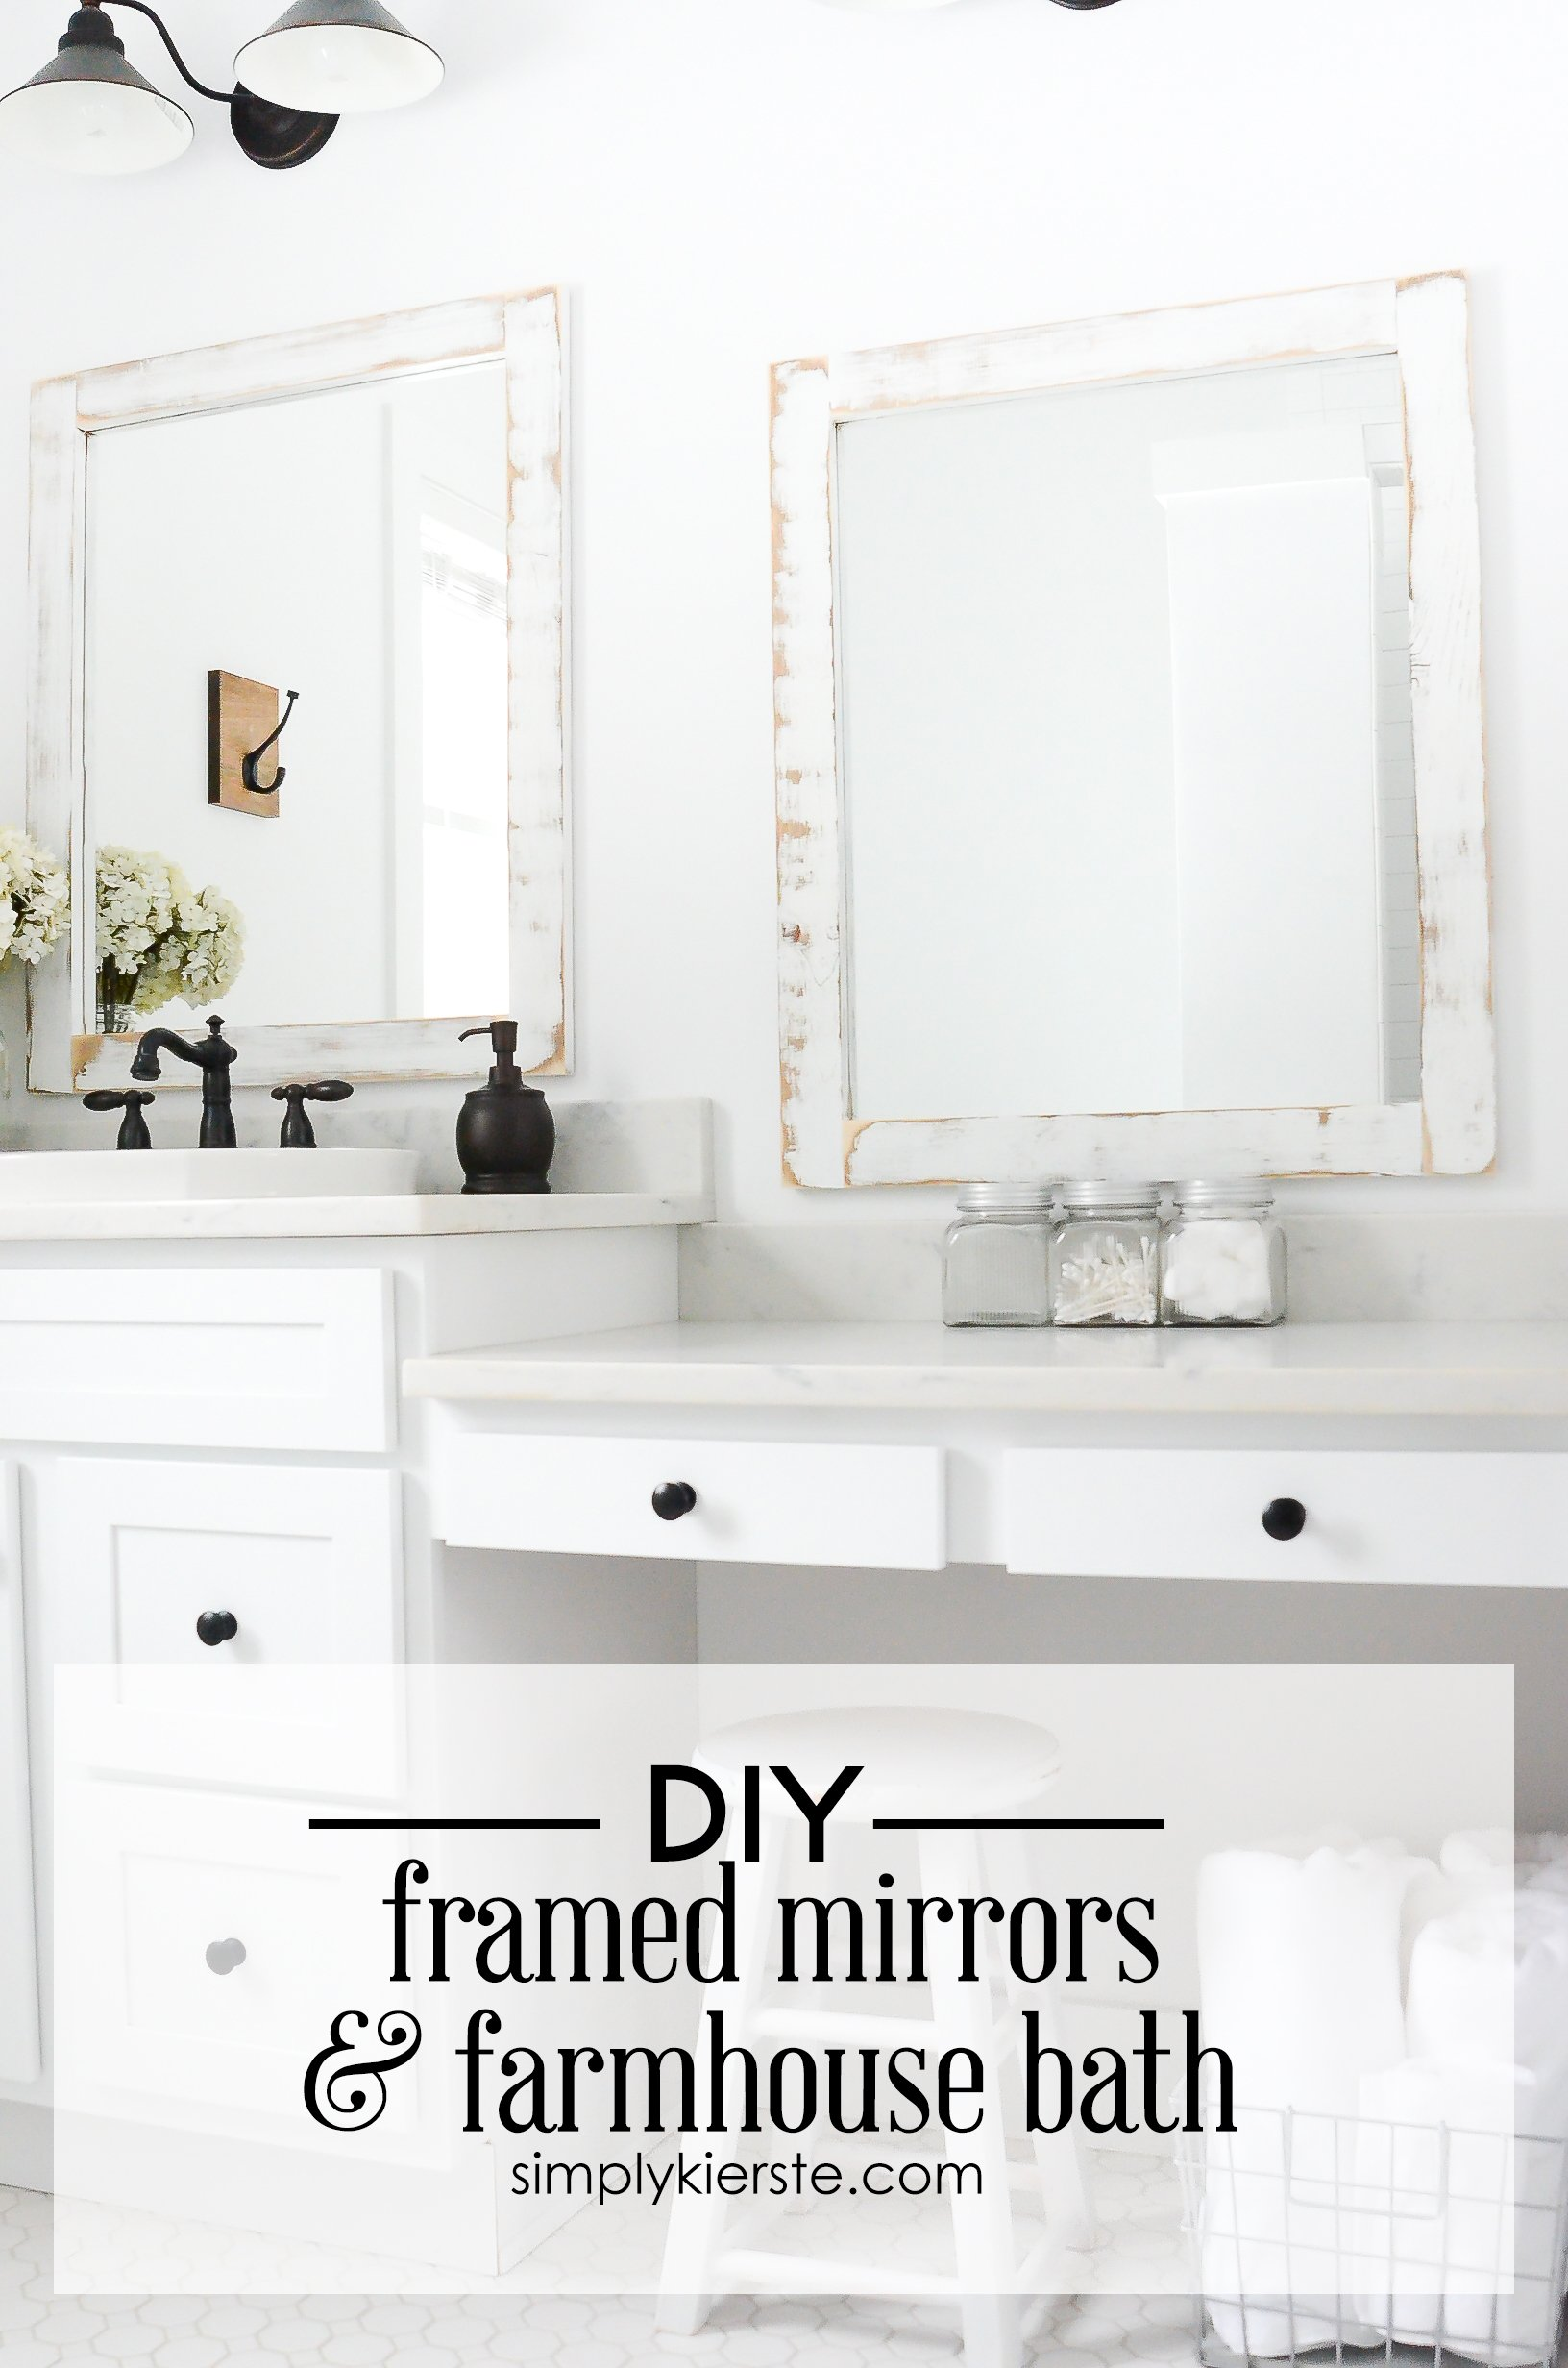 Bathroom Framed Mirrors - 4k Wallpapers Design